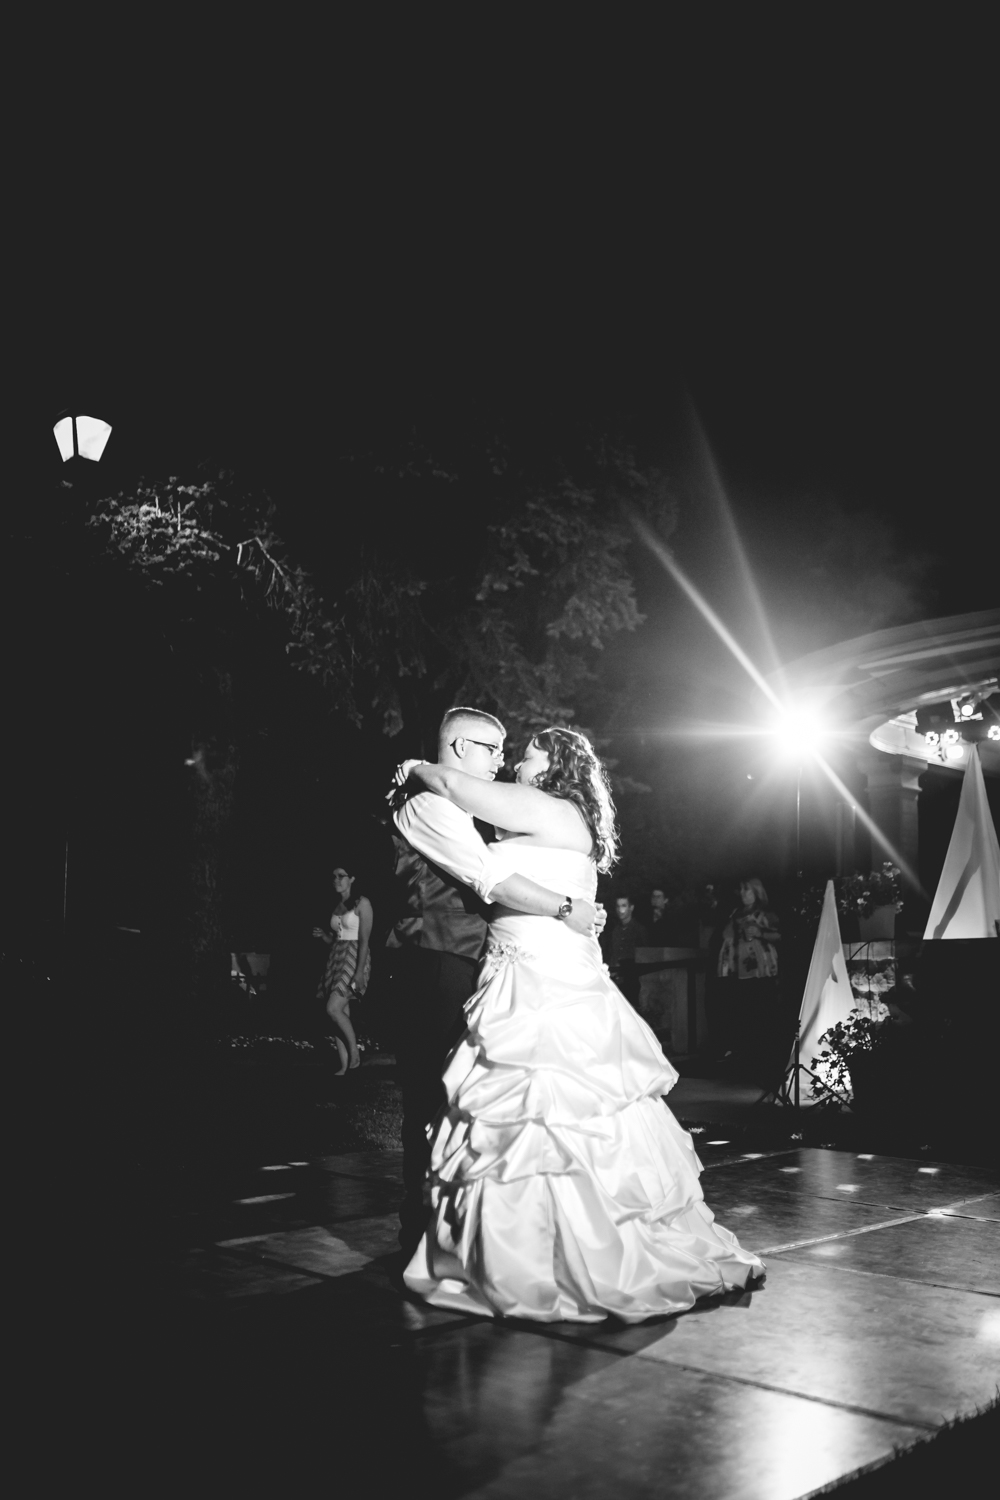 Bride and groom dancing in the dark. Photographed by JMGant Photography.